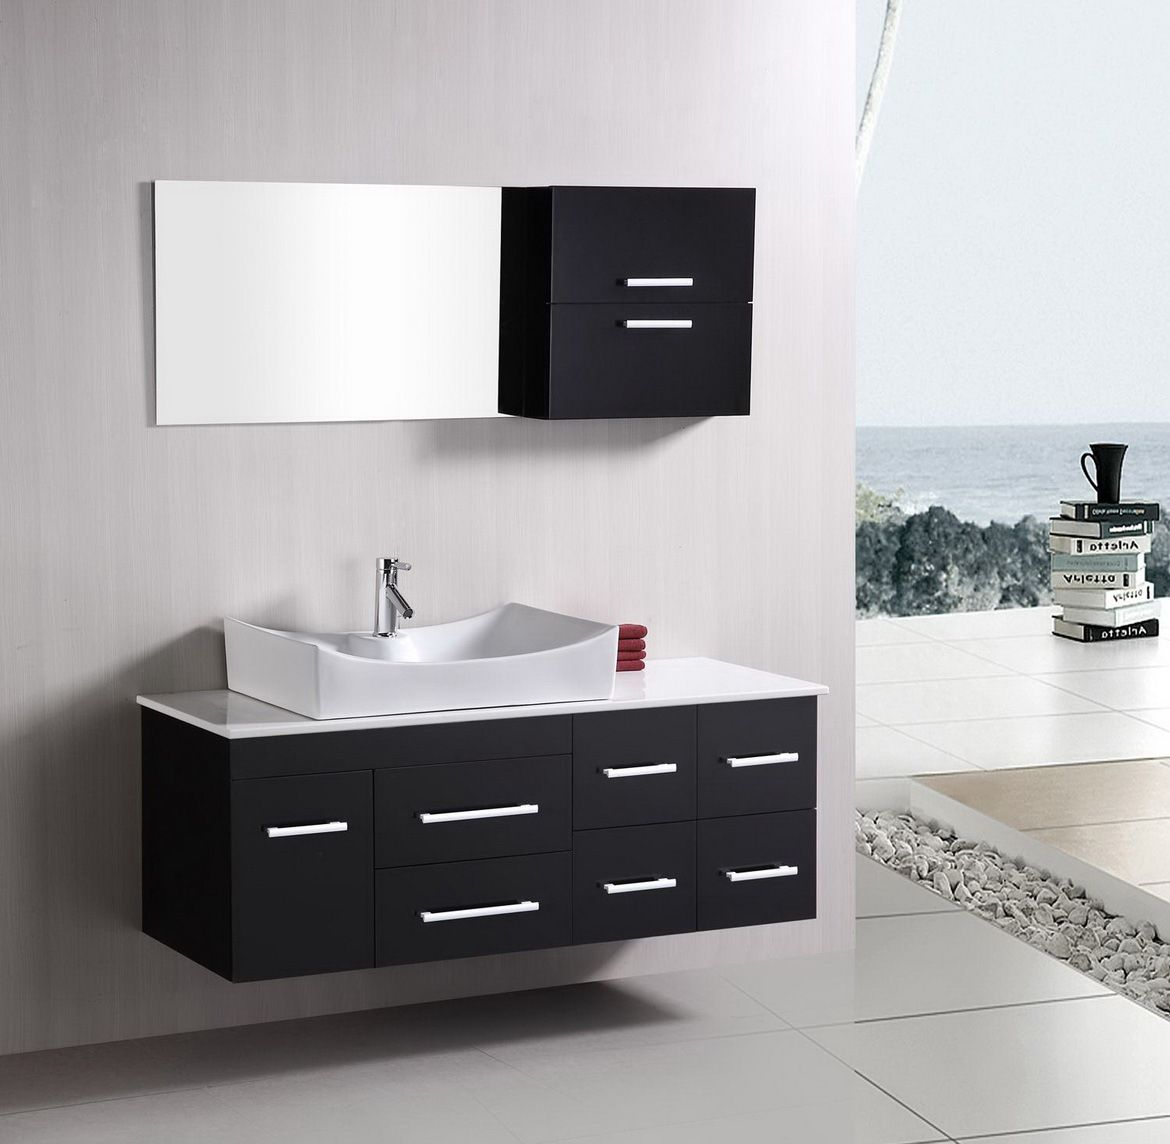 Bathroom Vanities Making Bathrooms A Place To Relax - Design bathroom vanity cabinets